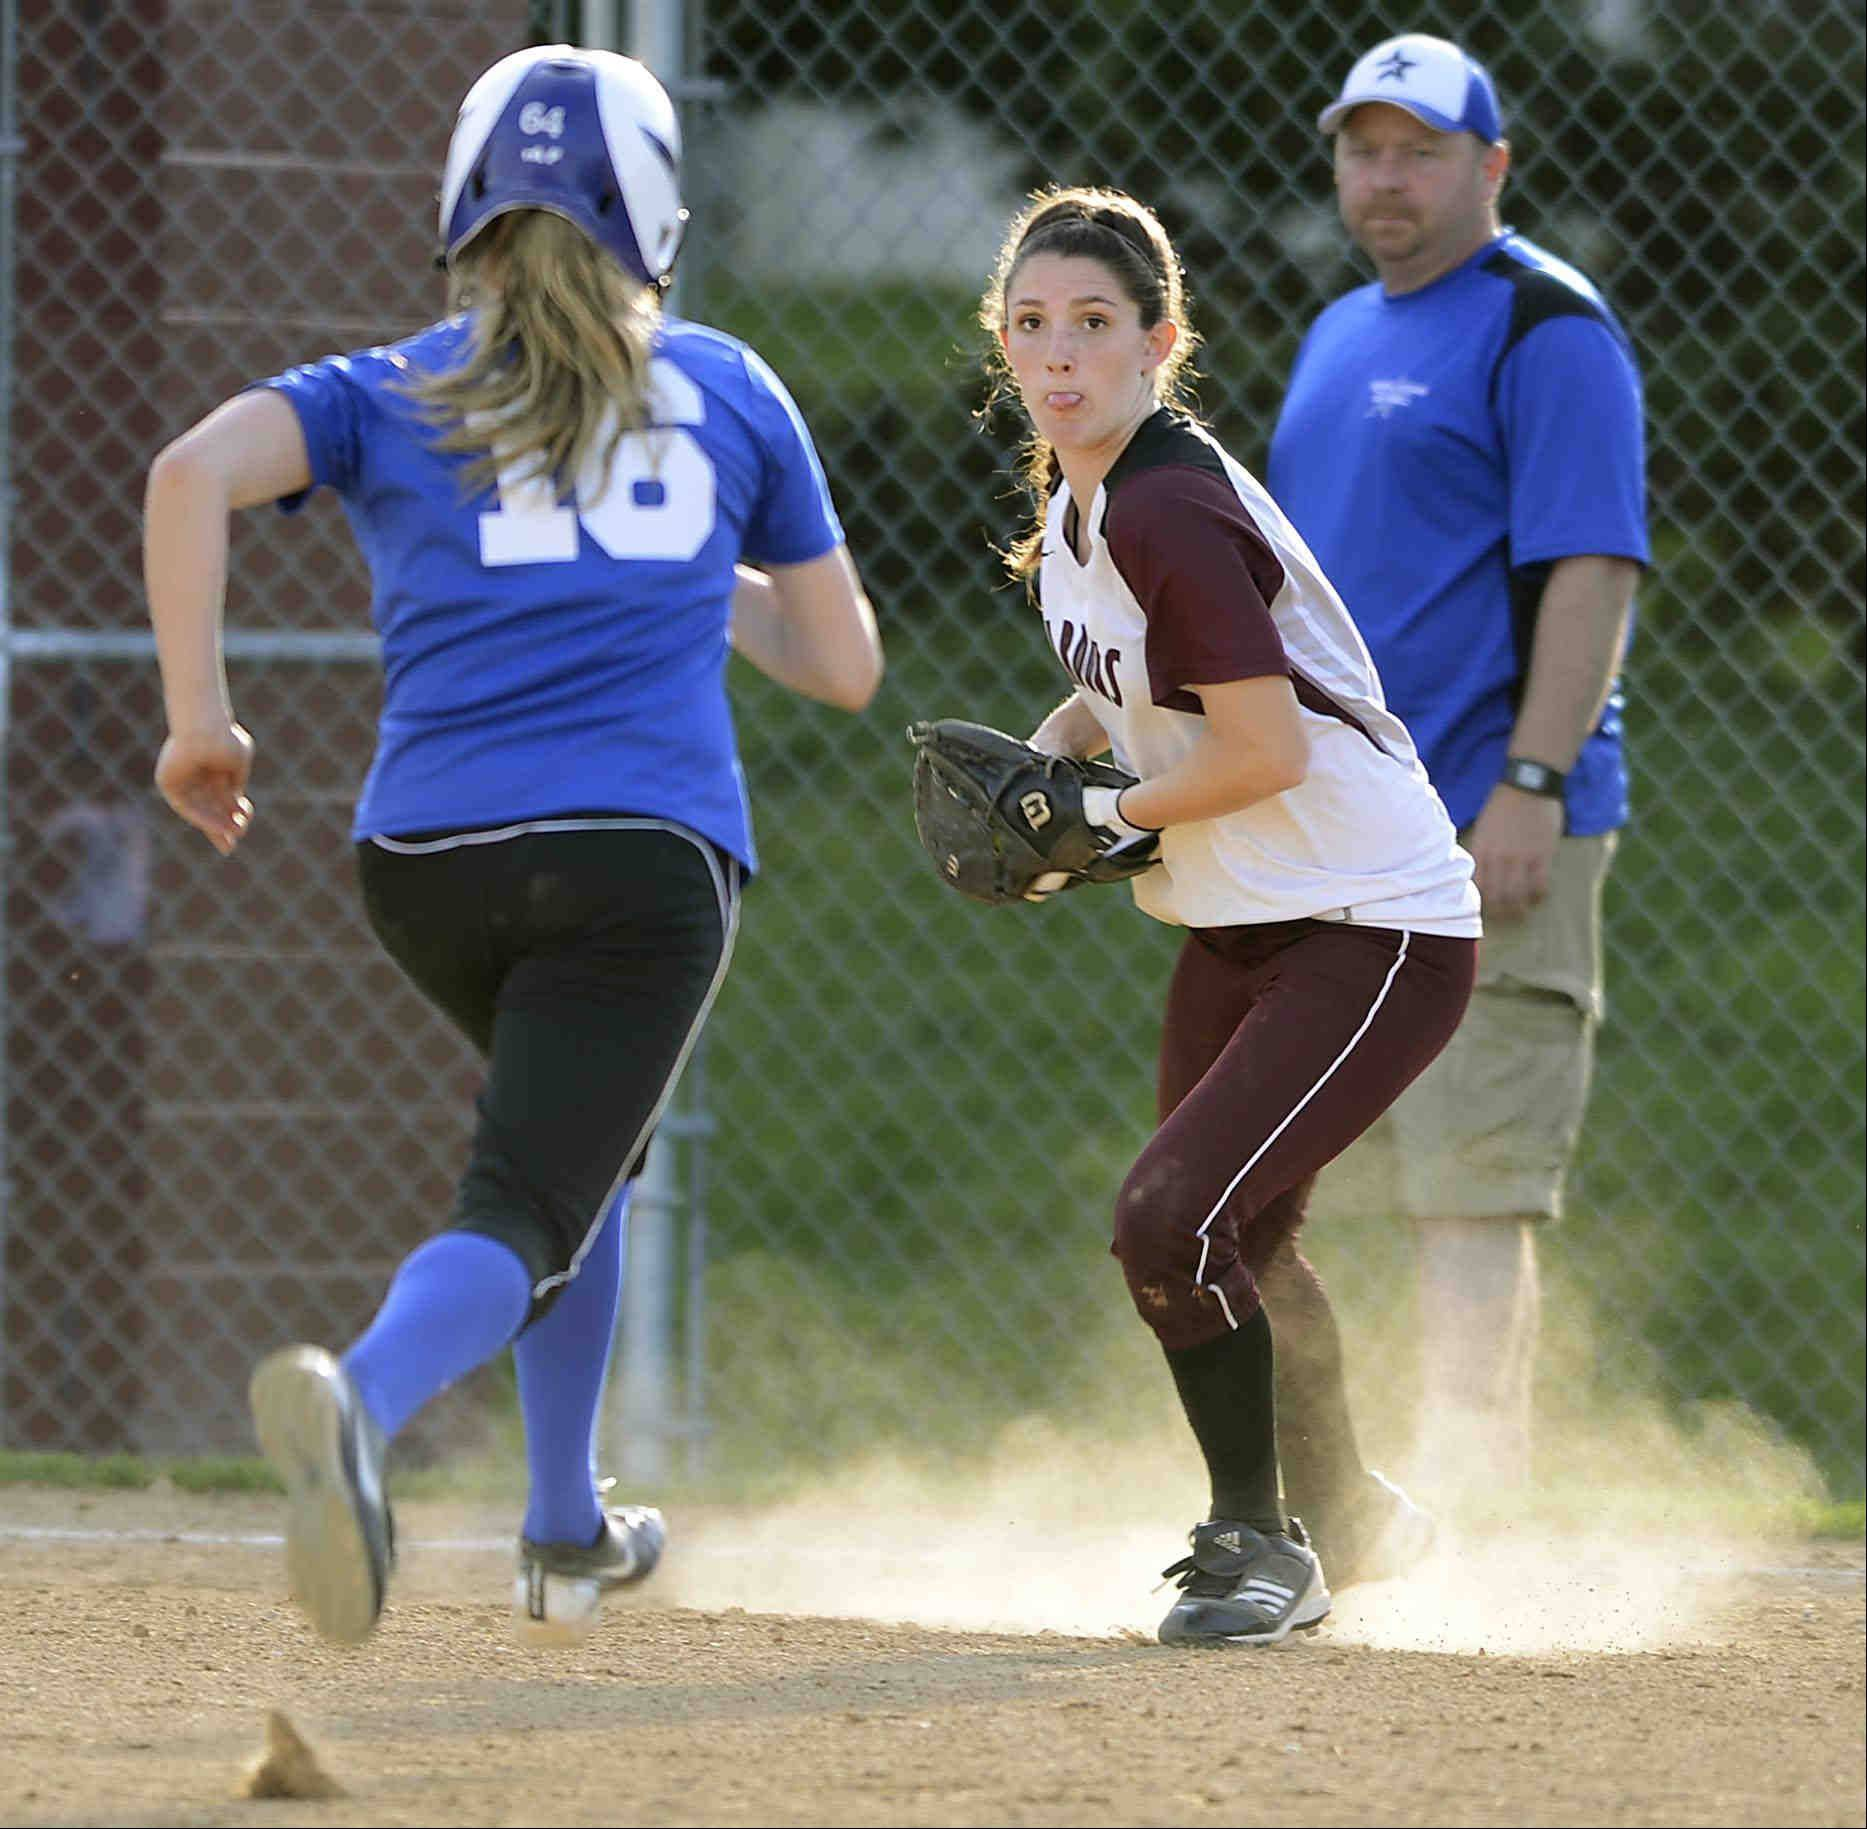 Elgin third baseman Jennah Perryman steps toward St. Charles North baserunner Samantha Hausl to tag her out after fielding a ground ball by Katie Roggemann Tuesday in Elgin.